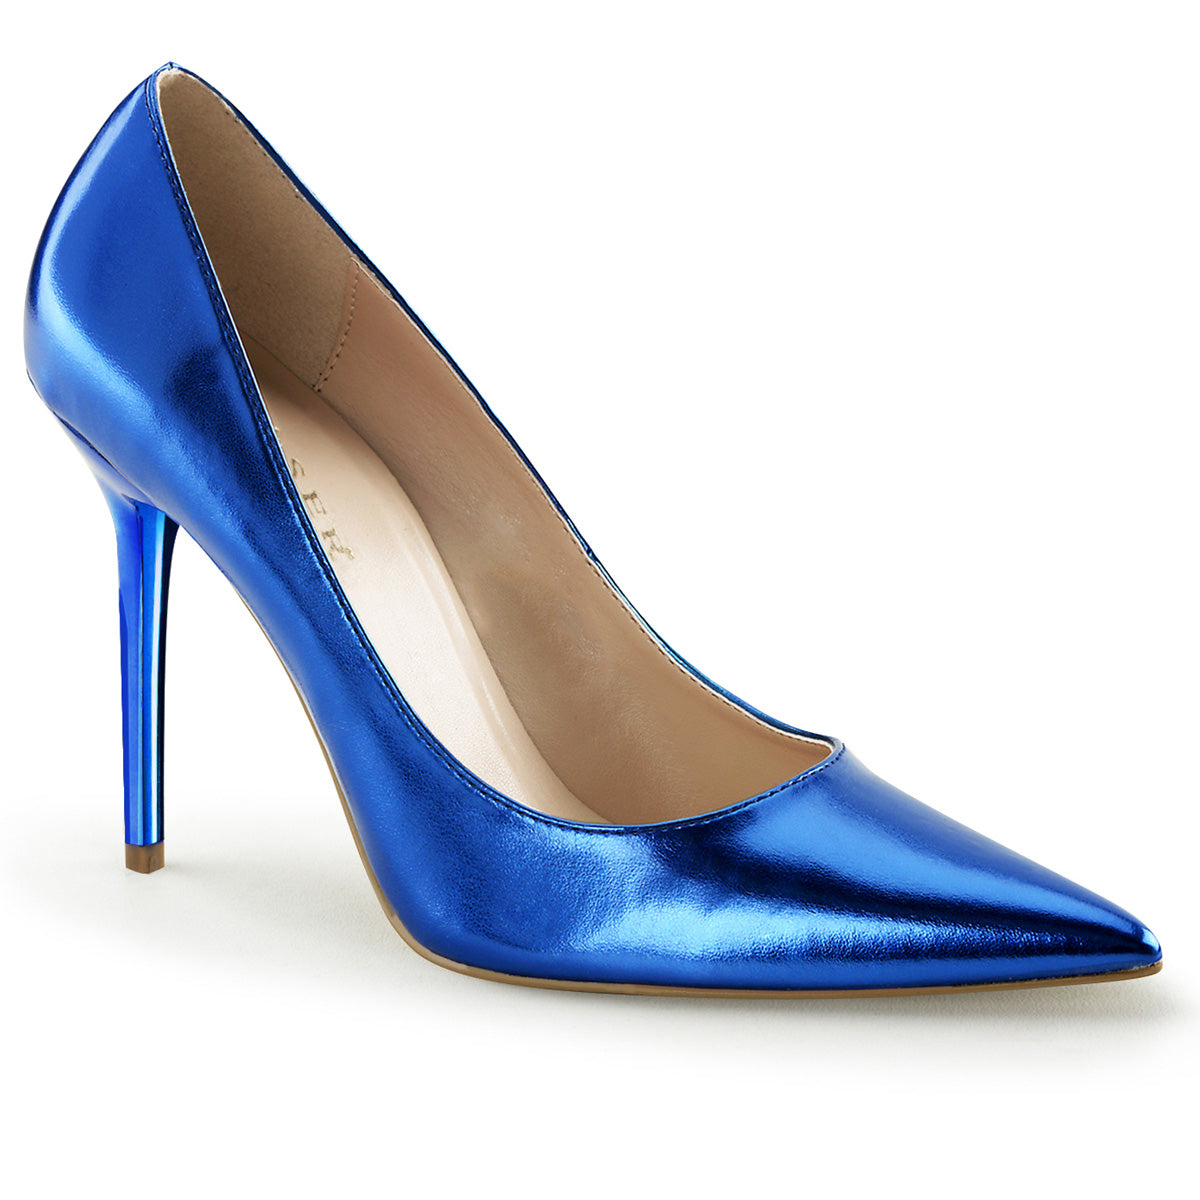 0ddbb0ab1cf CLASSIQUE-20 Pleaser Sexy Shoes 4 Inch Pointed-Toe Stiletto Heel Shoes –  Miss Hollywood Sexy Shoes